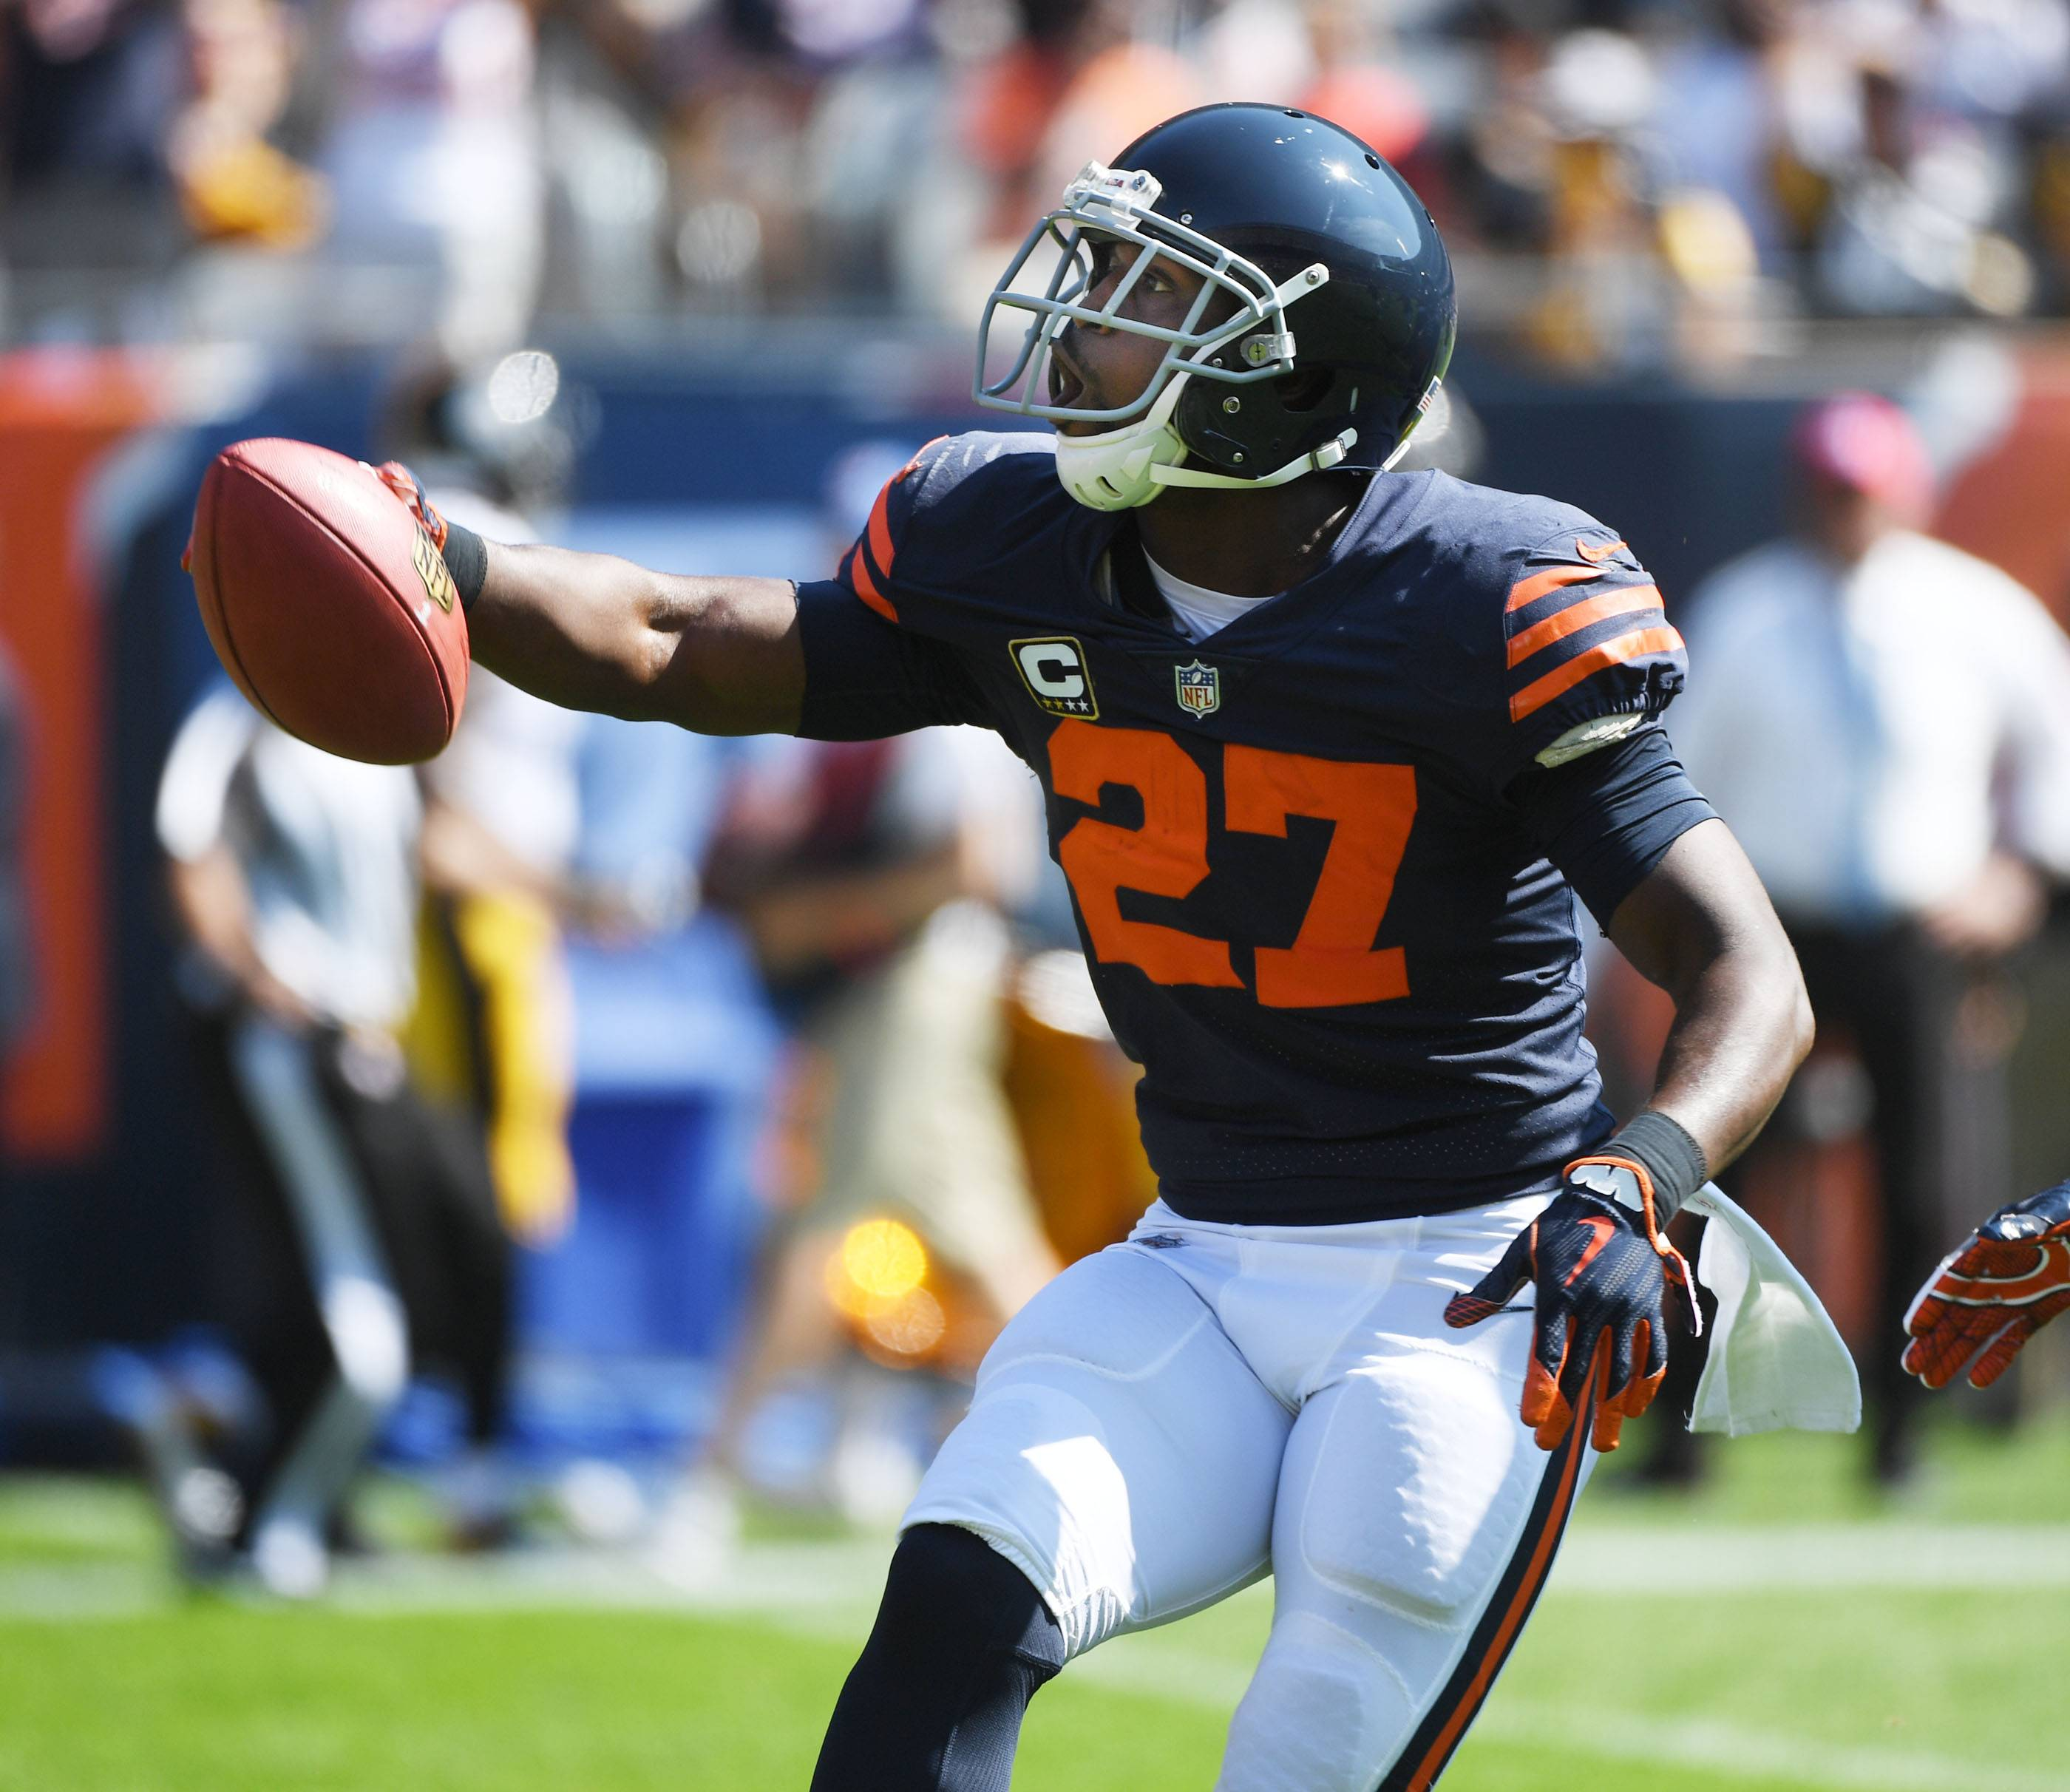 Chicago Bears cornerback Sherrick McManis celebrates recovering a kick dropped by Pittsburgh Steelers wide receiver Eli Rogers Sunday at Soldier Field in Chicago.